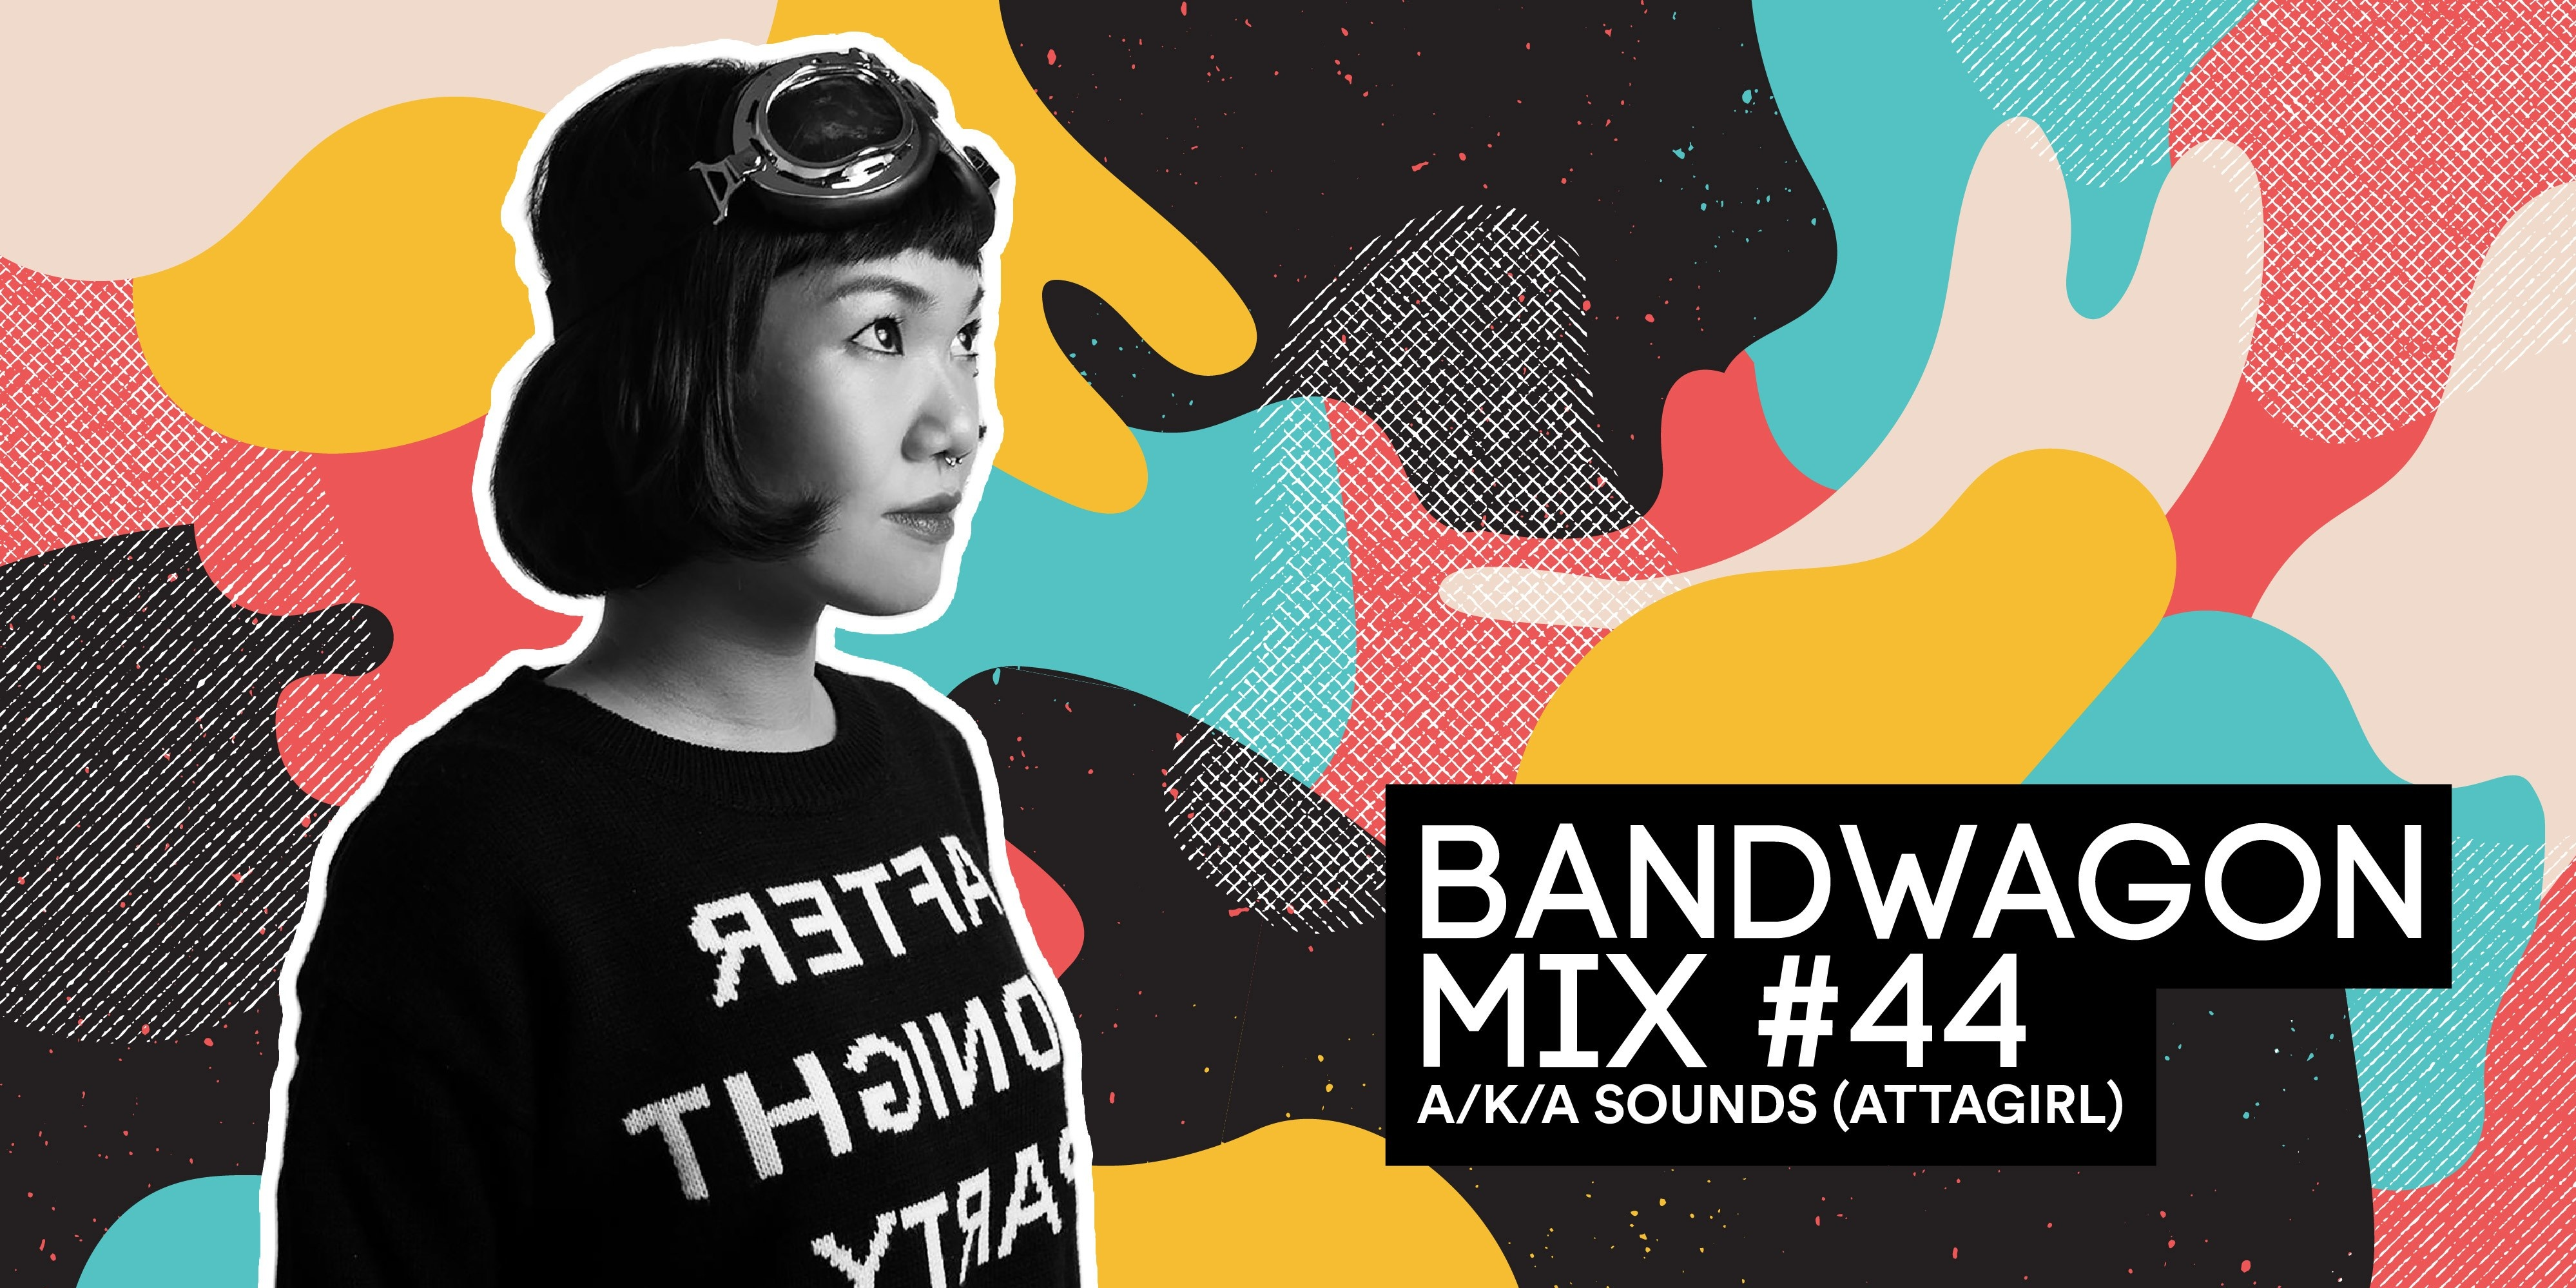 Bandwagon Mix #44: A/K/A SOUNDS (ATTAGIRL)